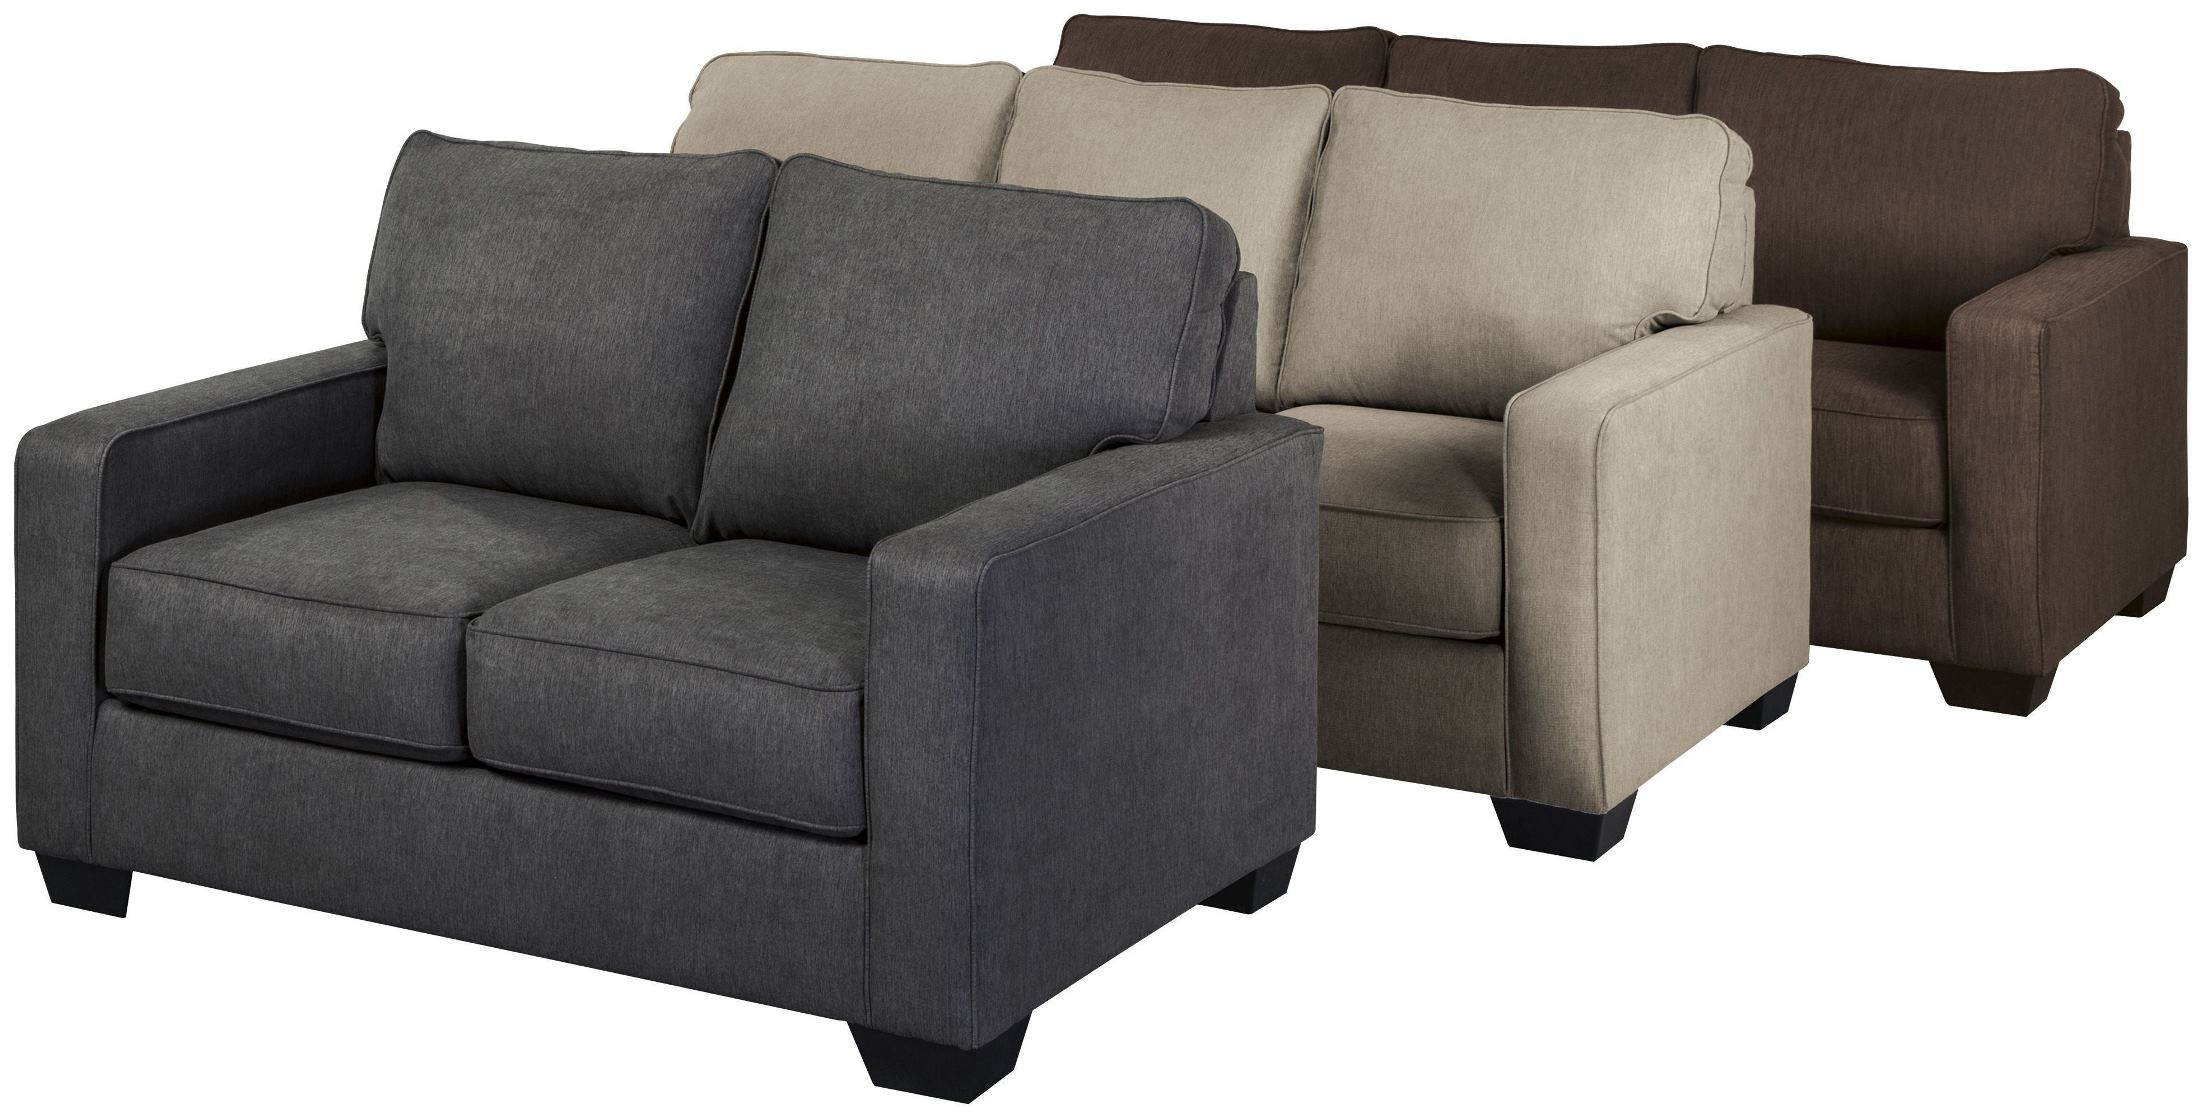 Zeb Charcoal Twin Sofa Sleeper From Ashley Coleman Furniture